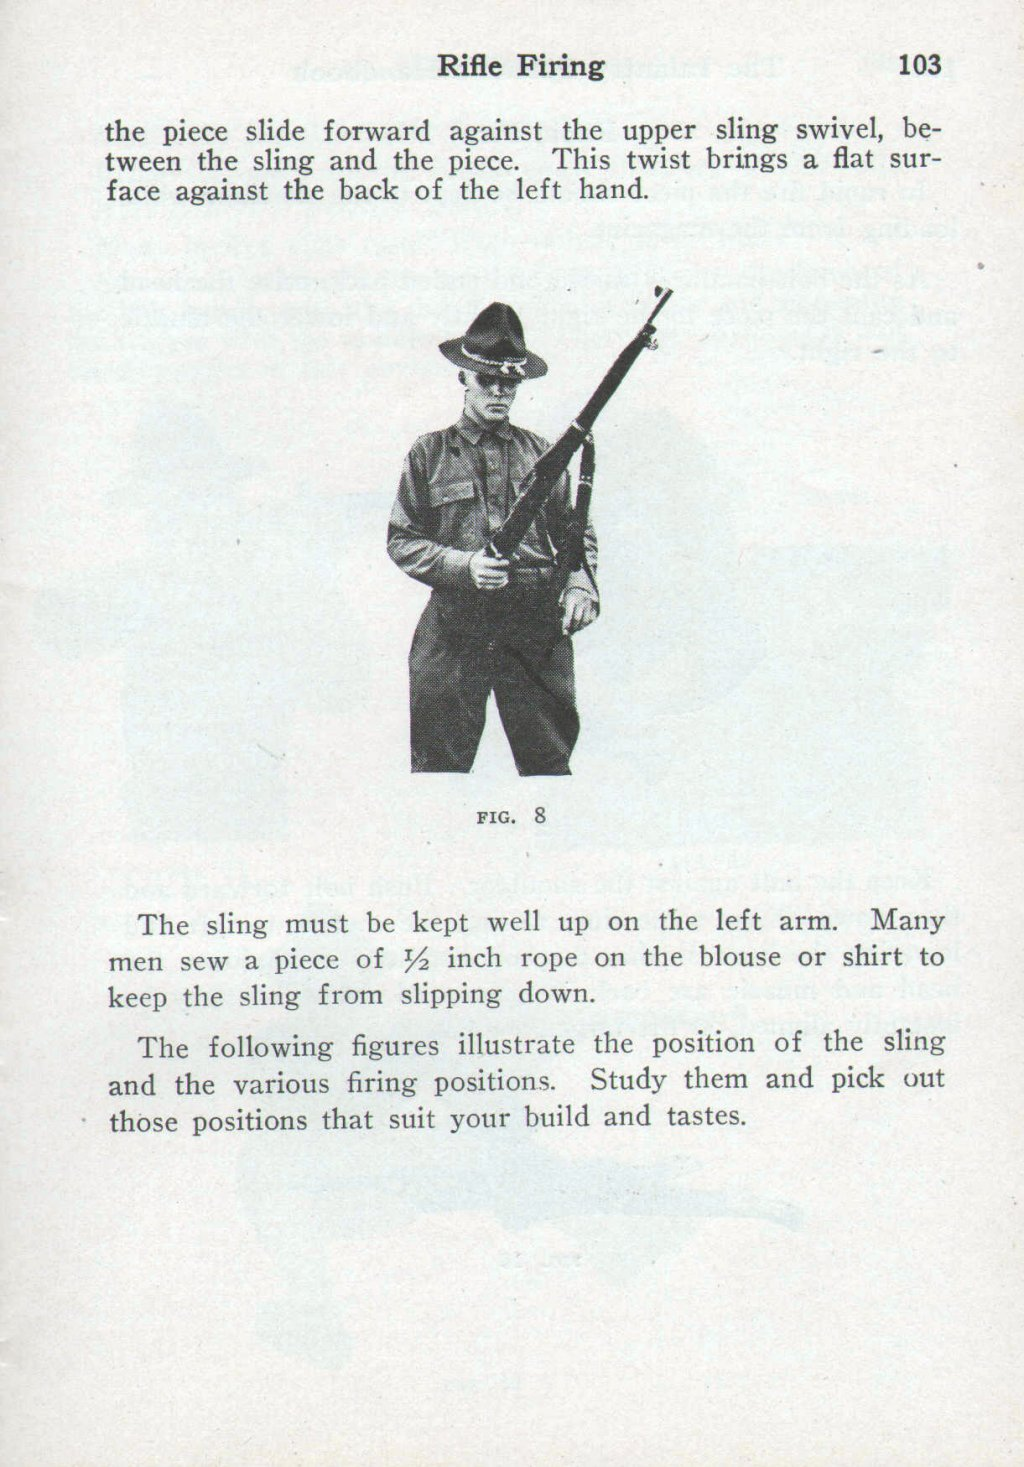 314th Infantry Regiment - Infantry Soldiers Handbook - Waldron - Page 103